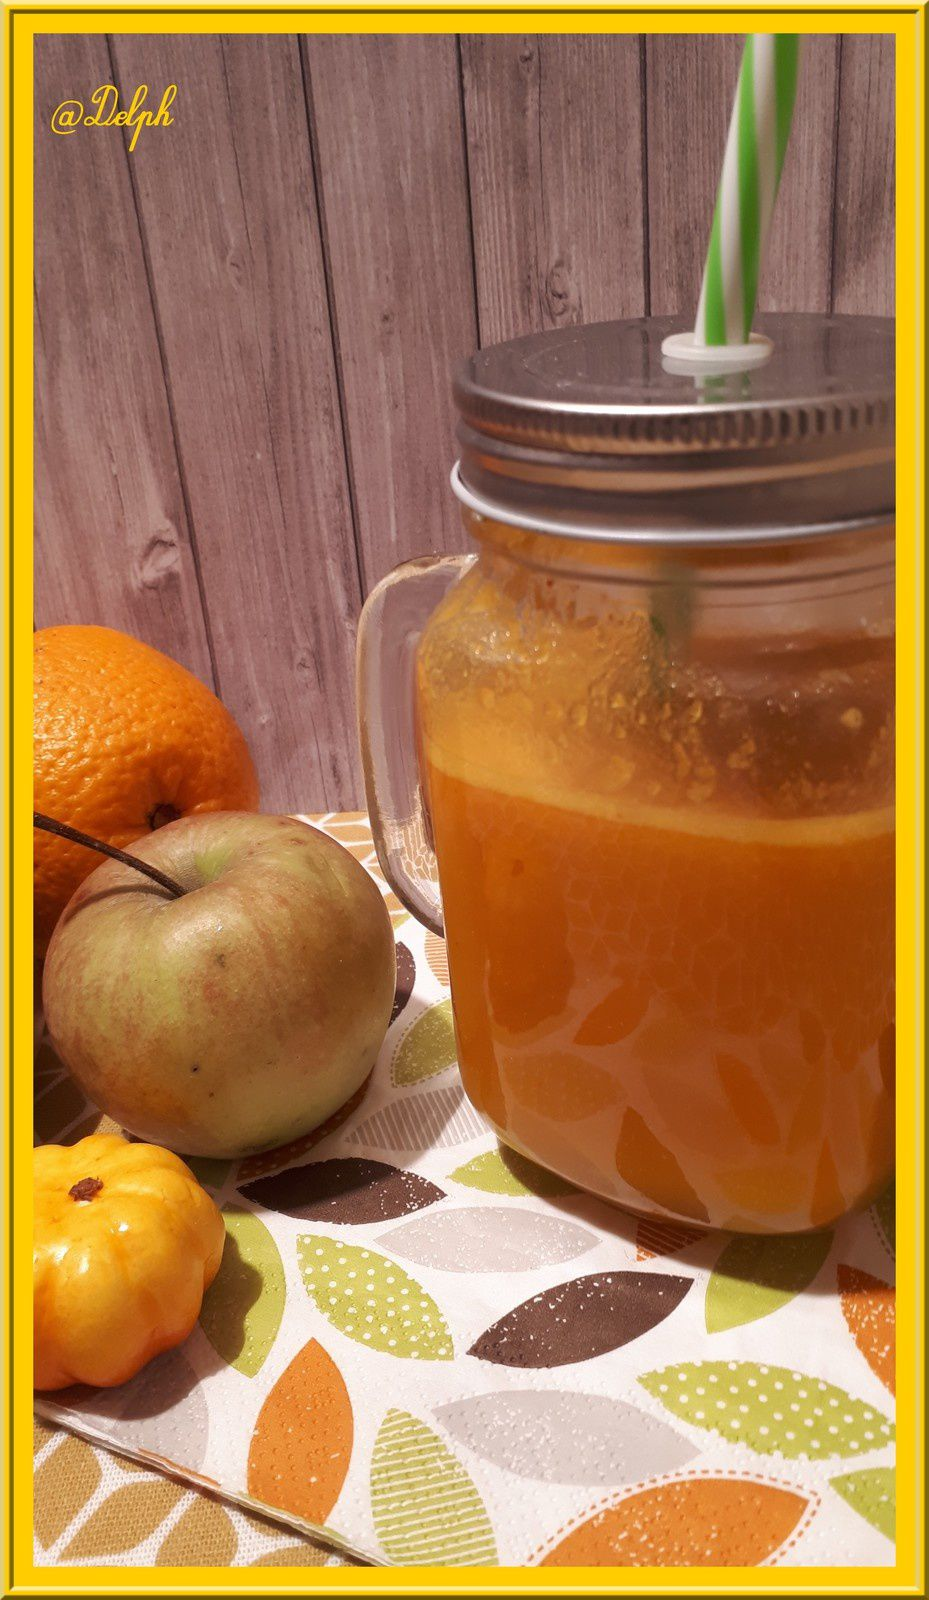 Thermomix Extracteur De Jus Jus De Potimarron Pommes Et Orange Oh La Gourmande